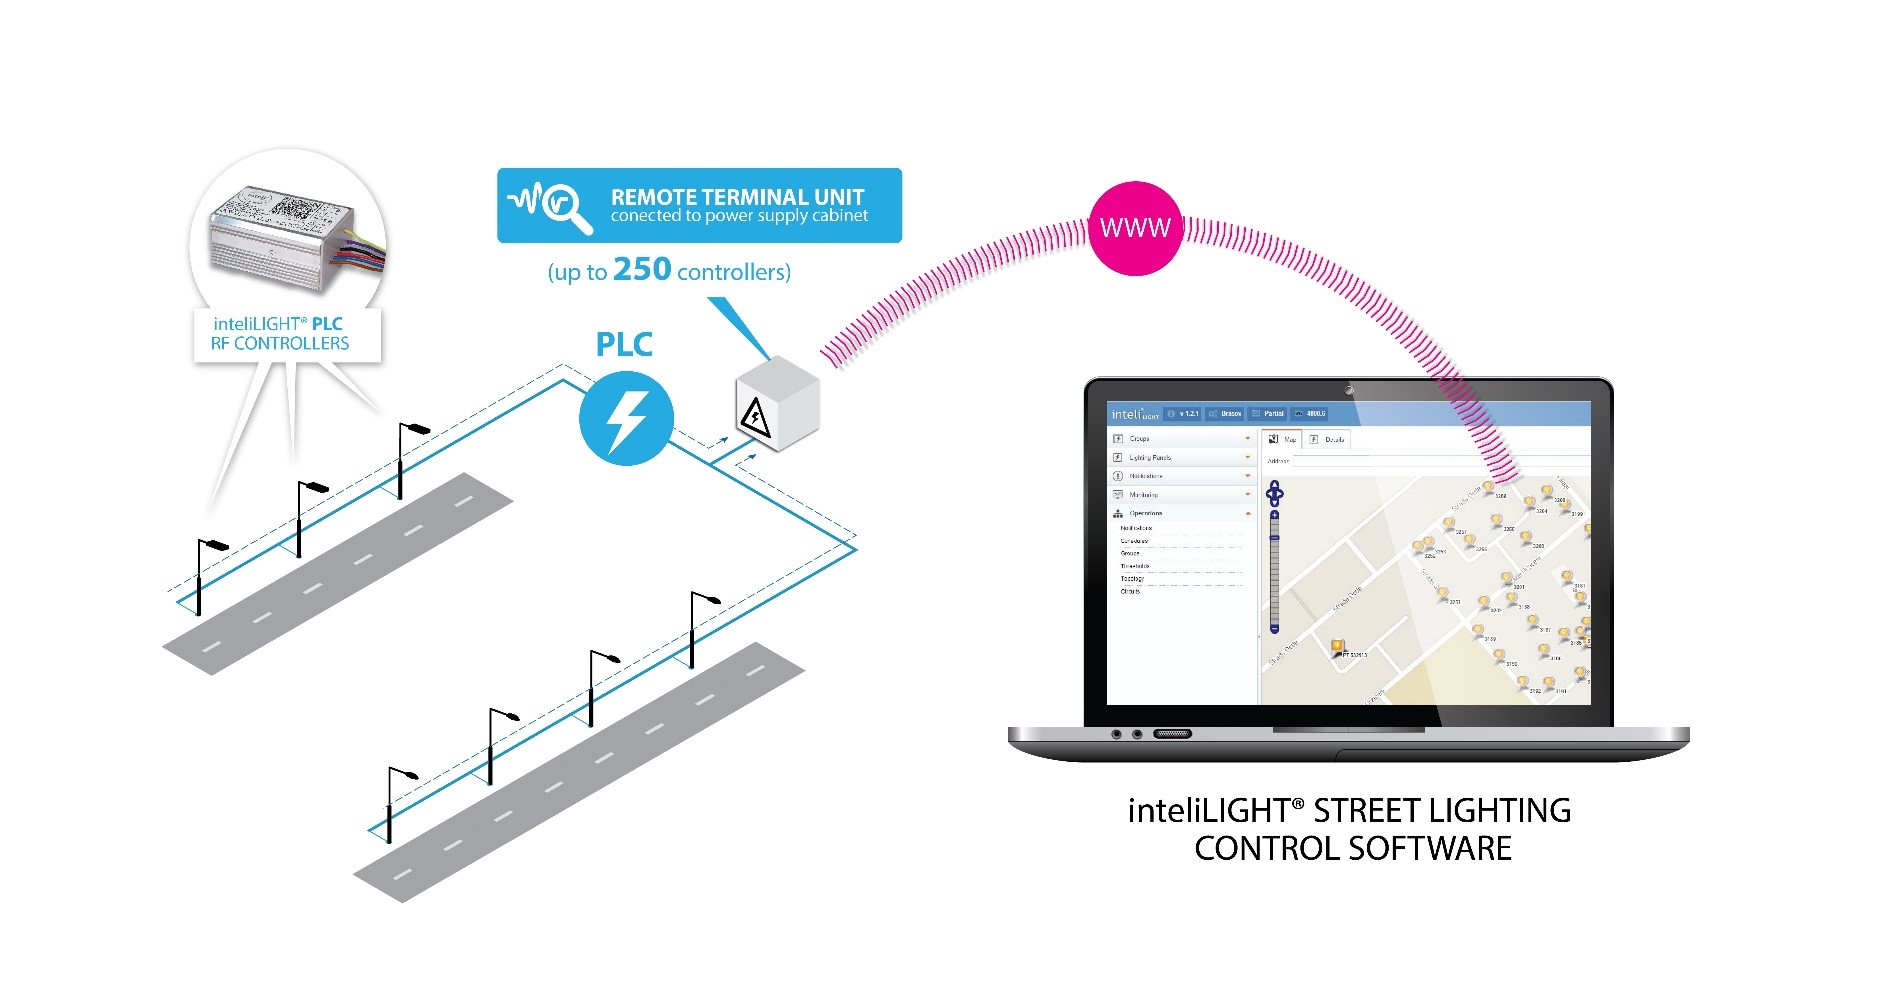 inteliLIGHT® provides the smart street lighting management for Dubai Water Canal